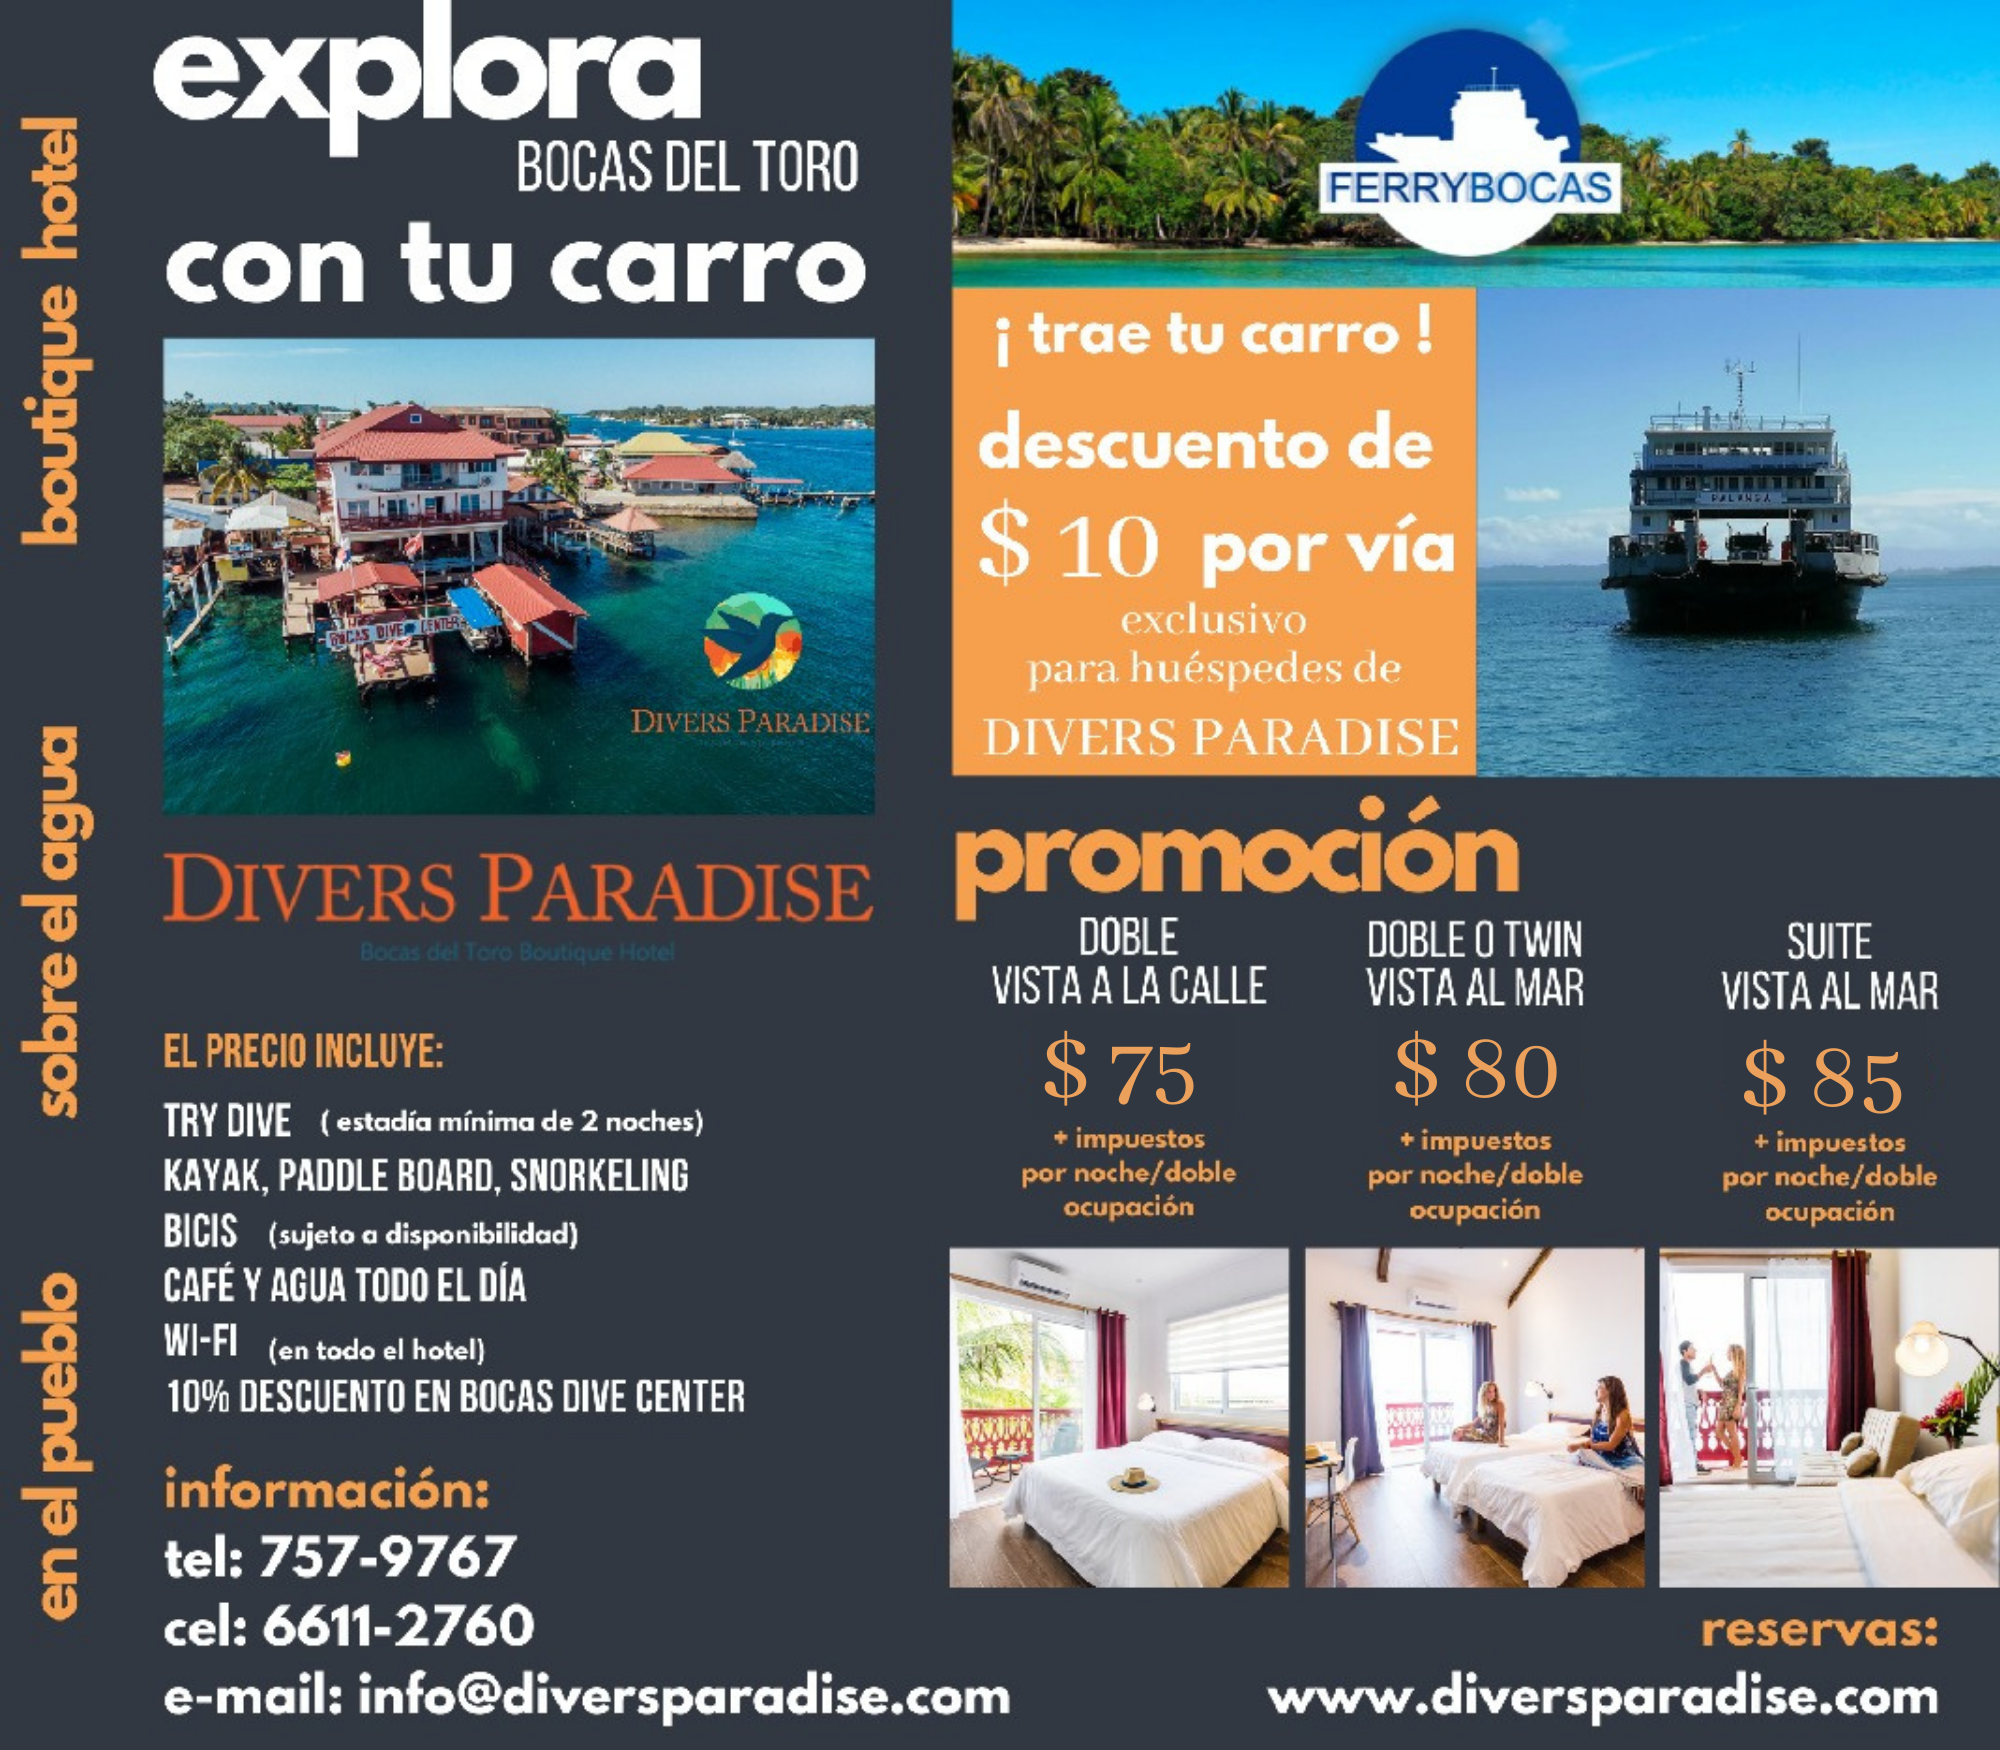 """A promotion called """"explore Bocas del Toro with your car"""" featuring a $10 discount on ferry rides for guests of Divers Paradise"""